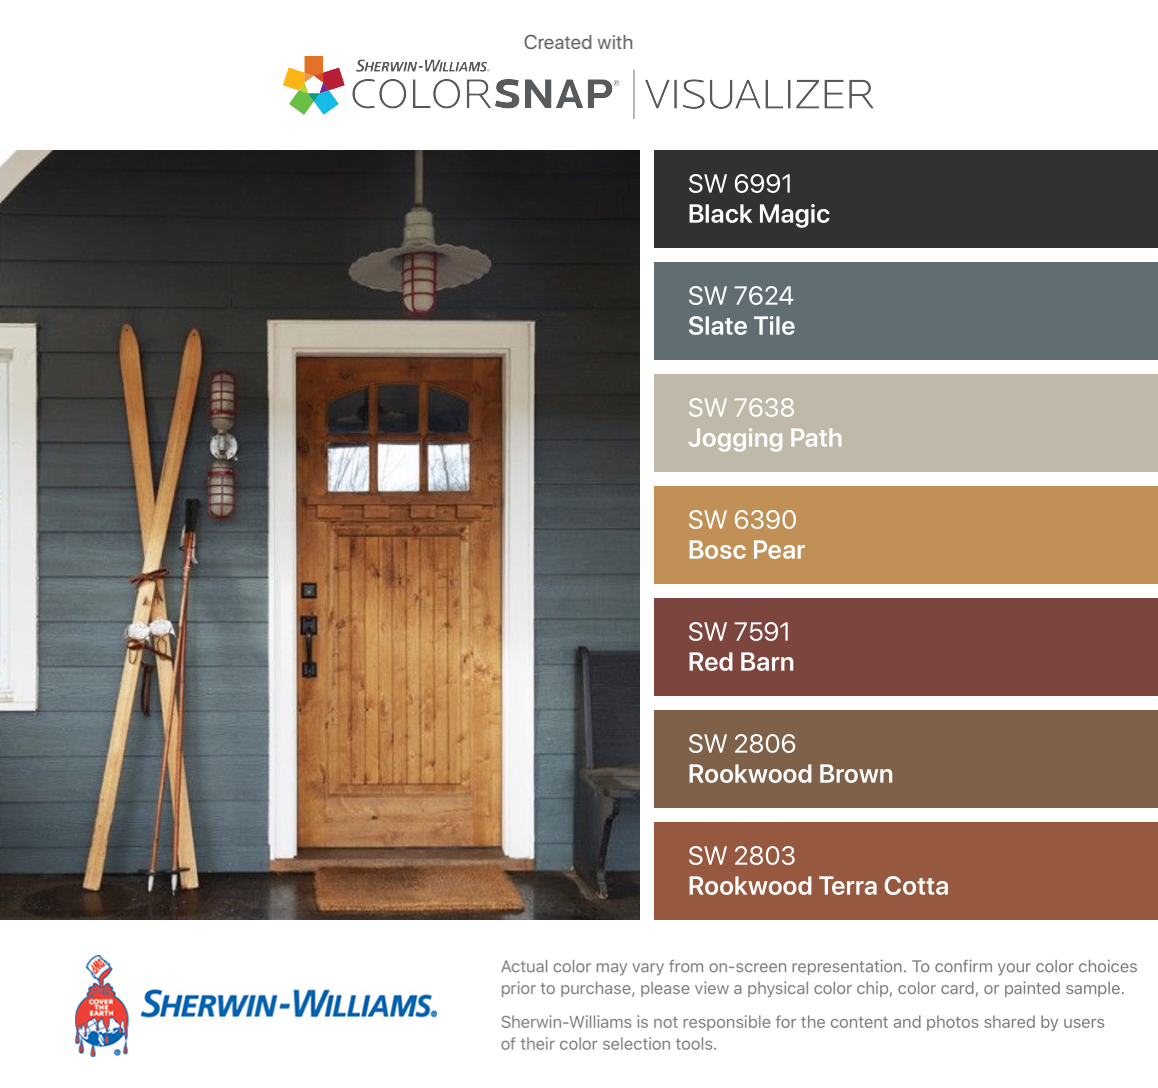 I Found These Colors With Colorsnap Visualizer For Iphone By Sherwin Williams Black Magic Sw